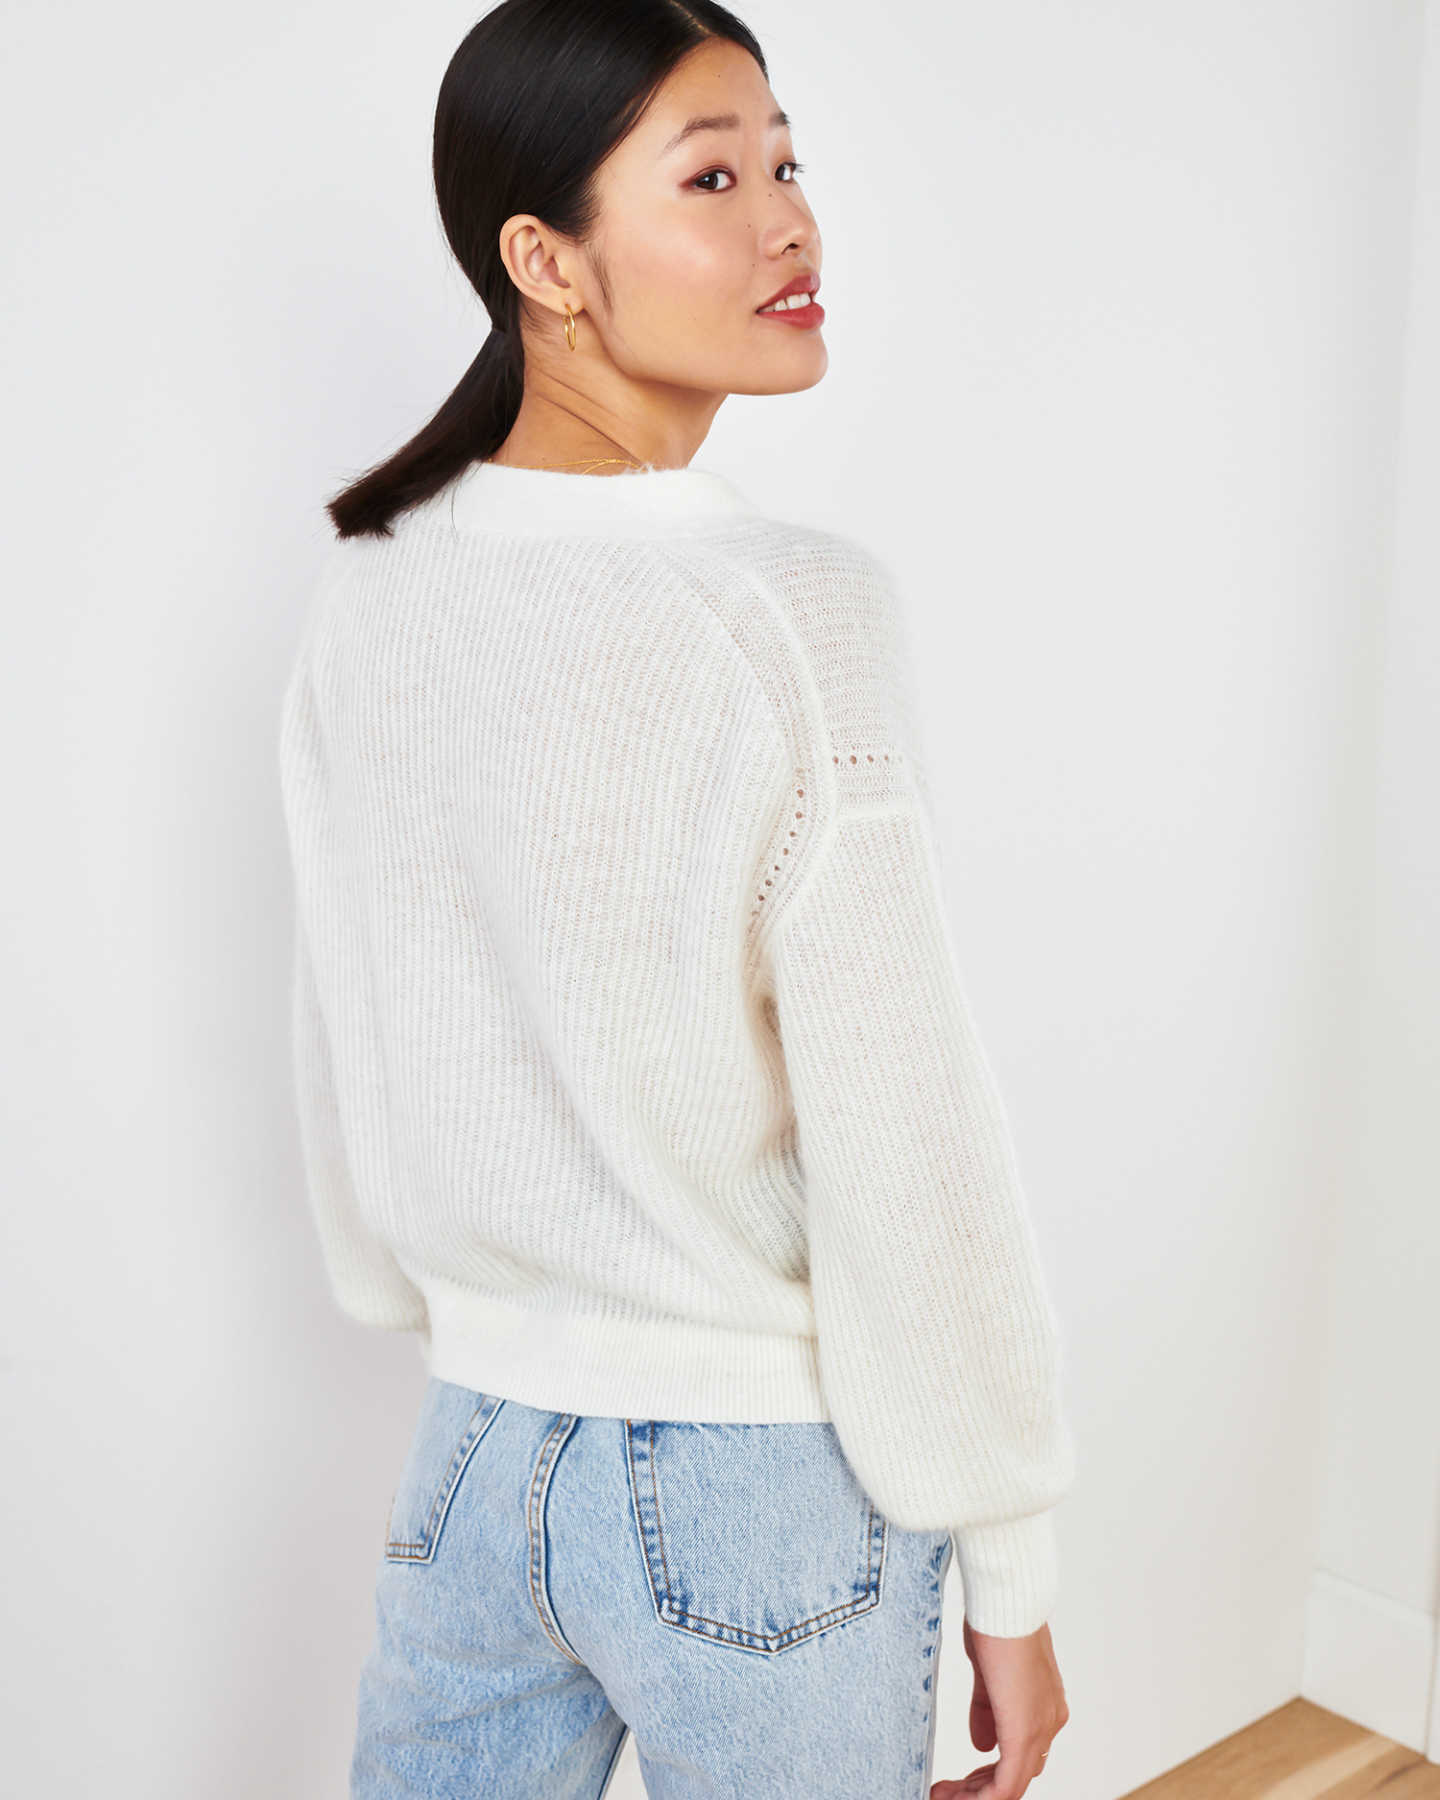 Superfine Alpaca Cropped Cardigan  - undefined - 6